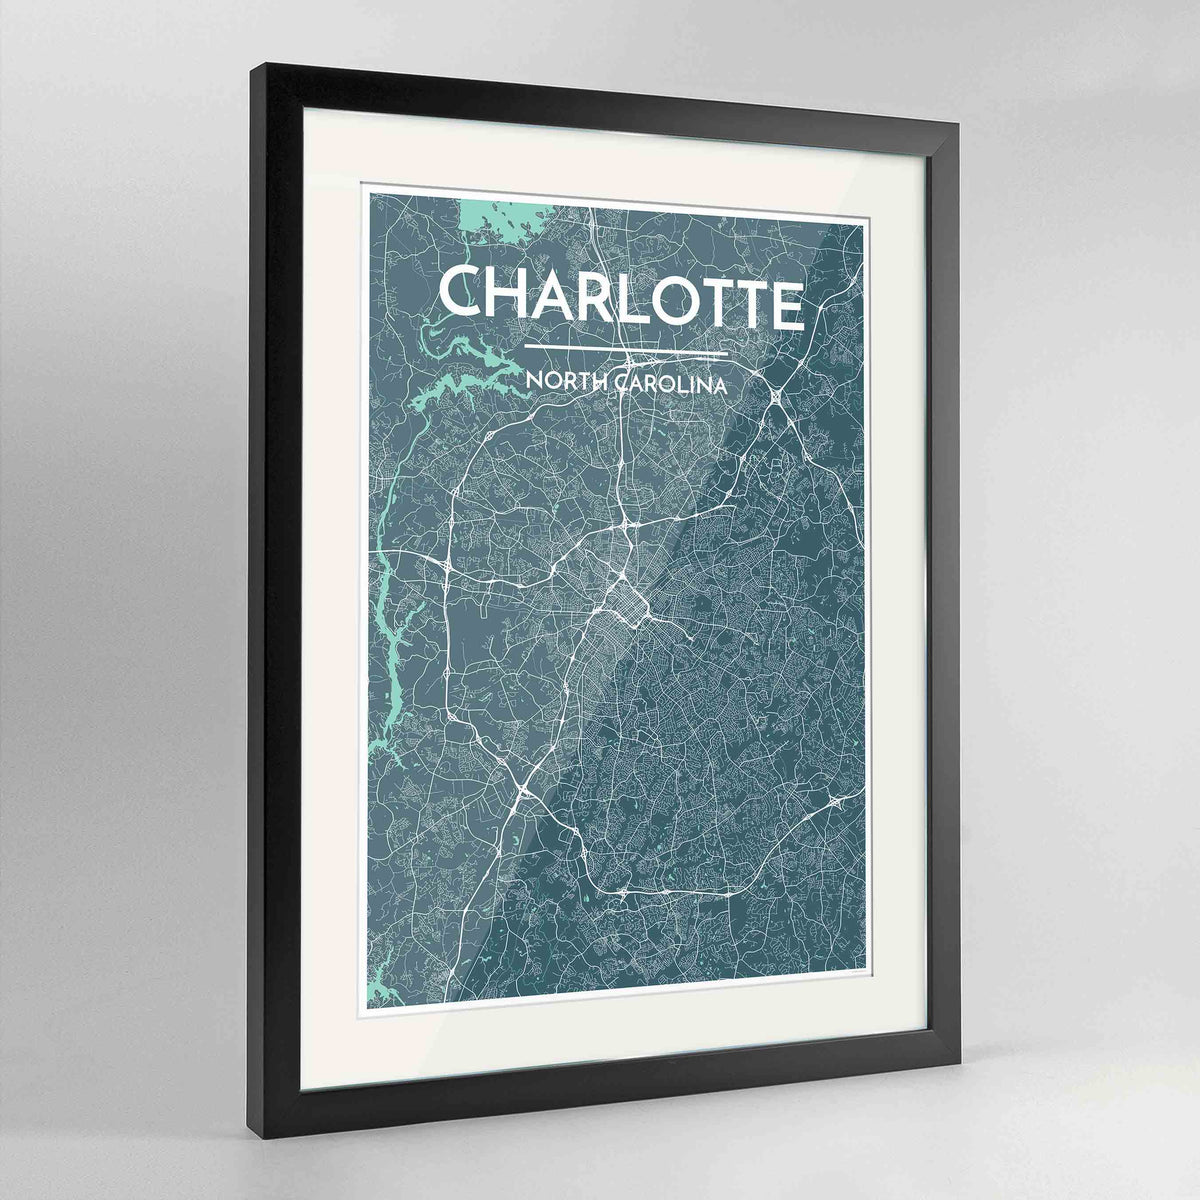 "Framed Charlotte Map Art Print 24x36"" Contemporary Black frame Point Two Design Group"